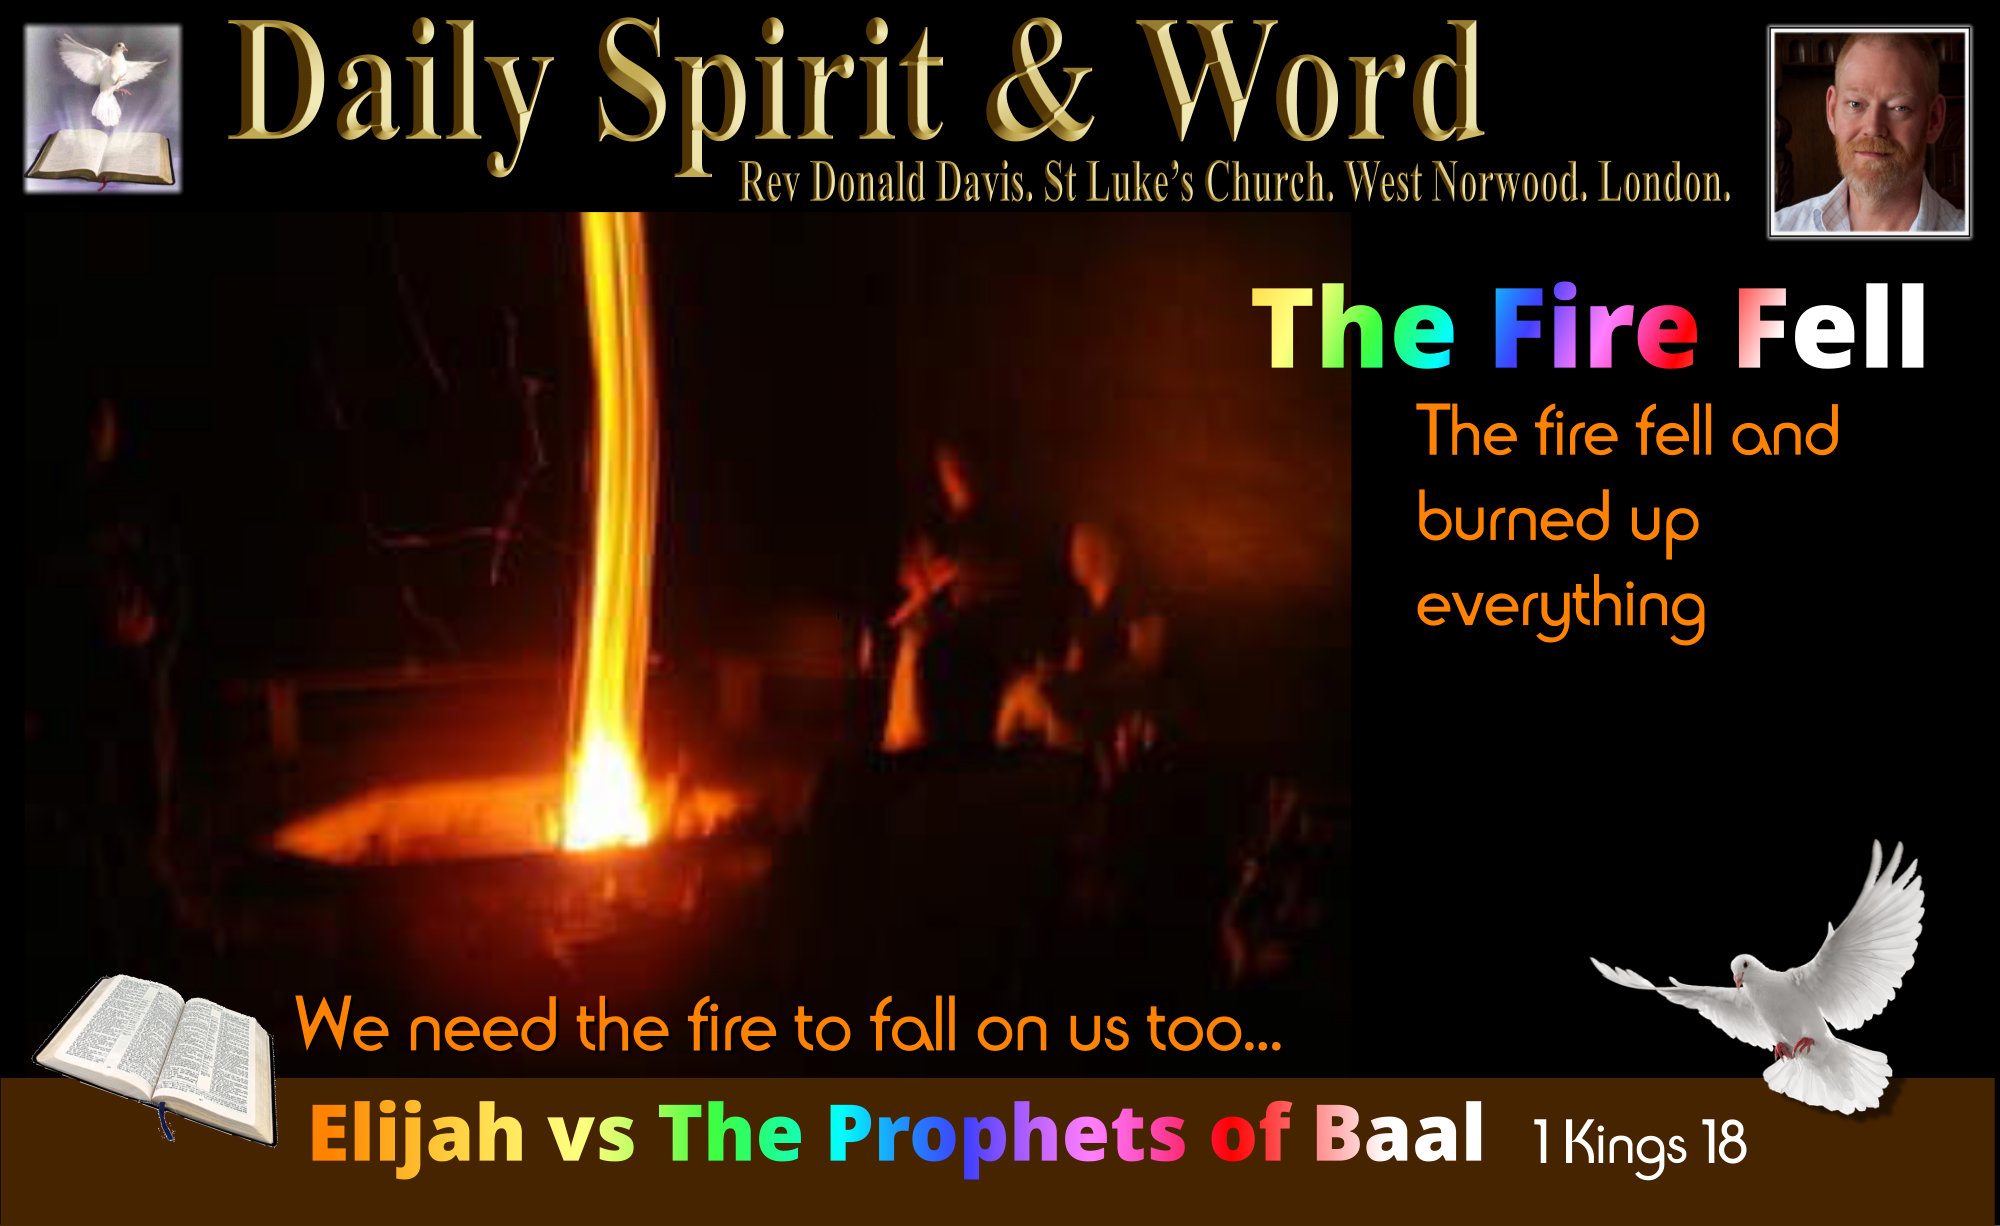 Elijah and the Prophets of Baal, the fire fell